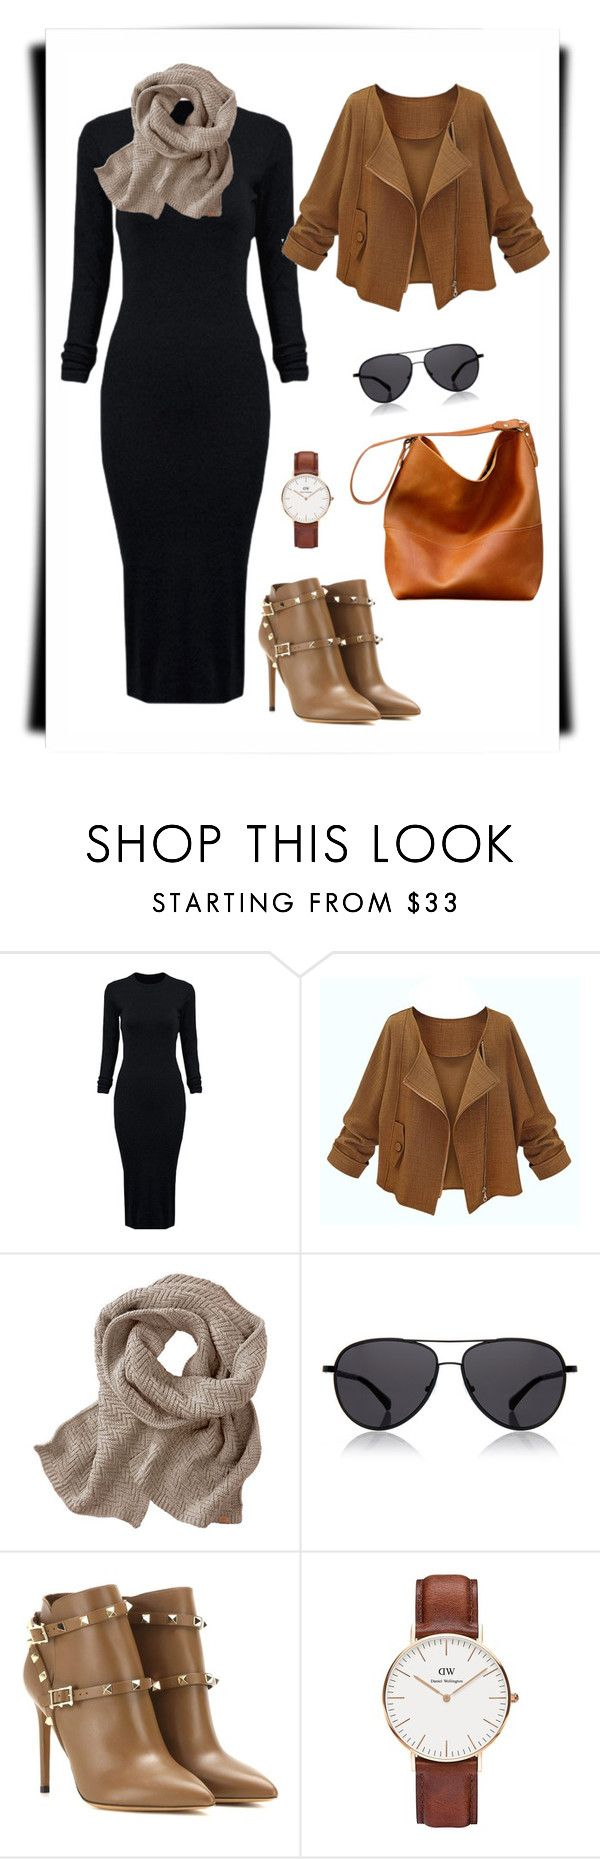 """""""hijab style"""" by fadilla-2122 on Polyvore featuring WithChic, The Row, Valentino, Daniel Wellington, women's clothing, women's fashion, women, female, woman and misses"""